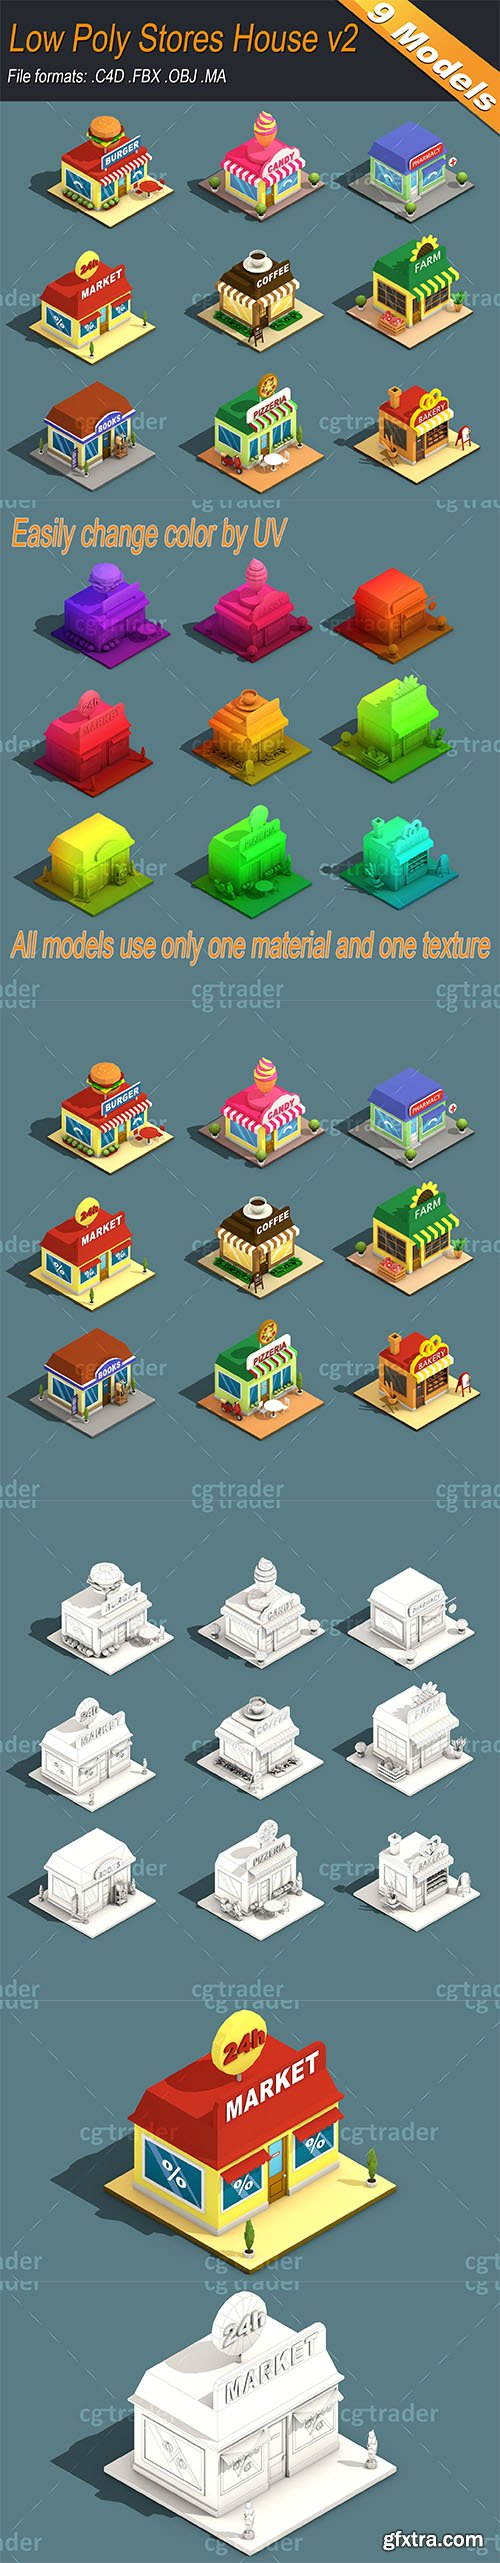 Cgtrader - Low Poly Stores House ver 2 Isometric Low-poly 3D model